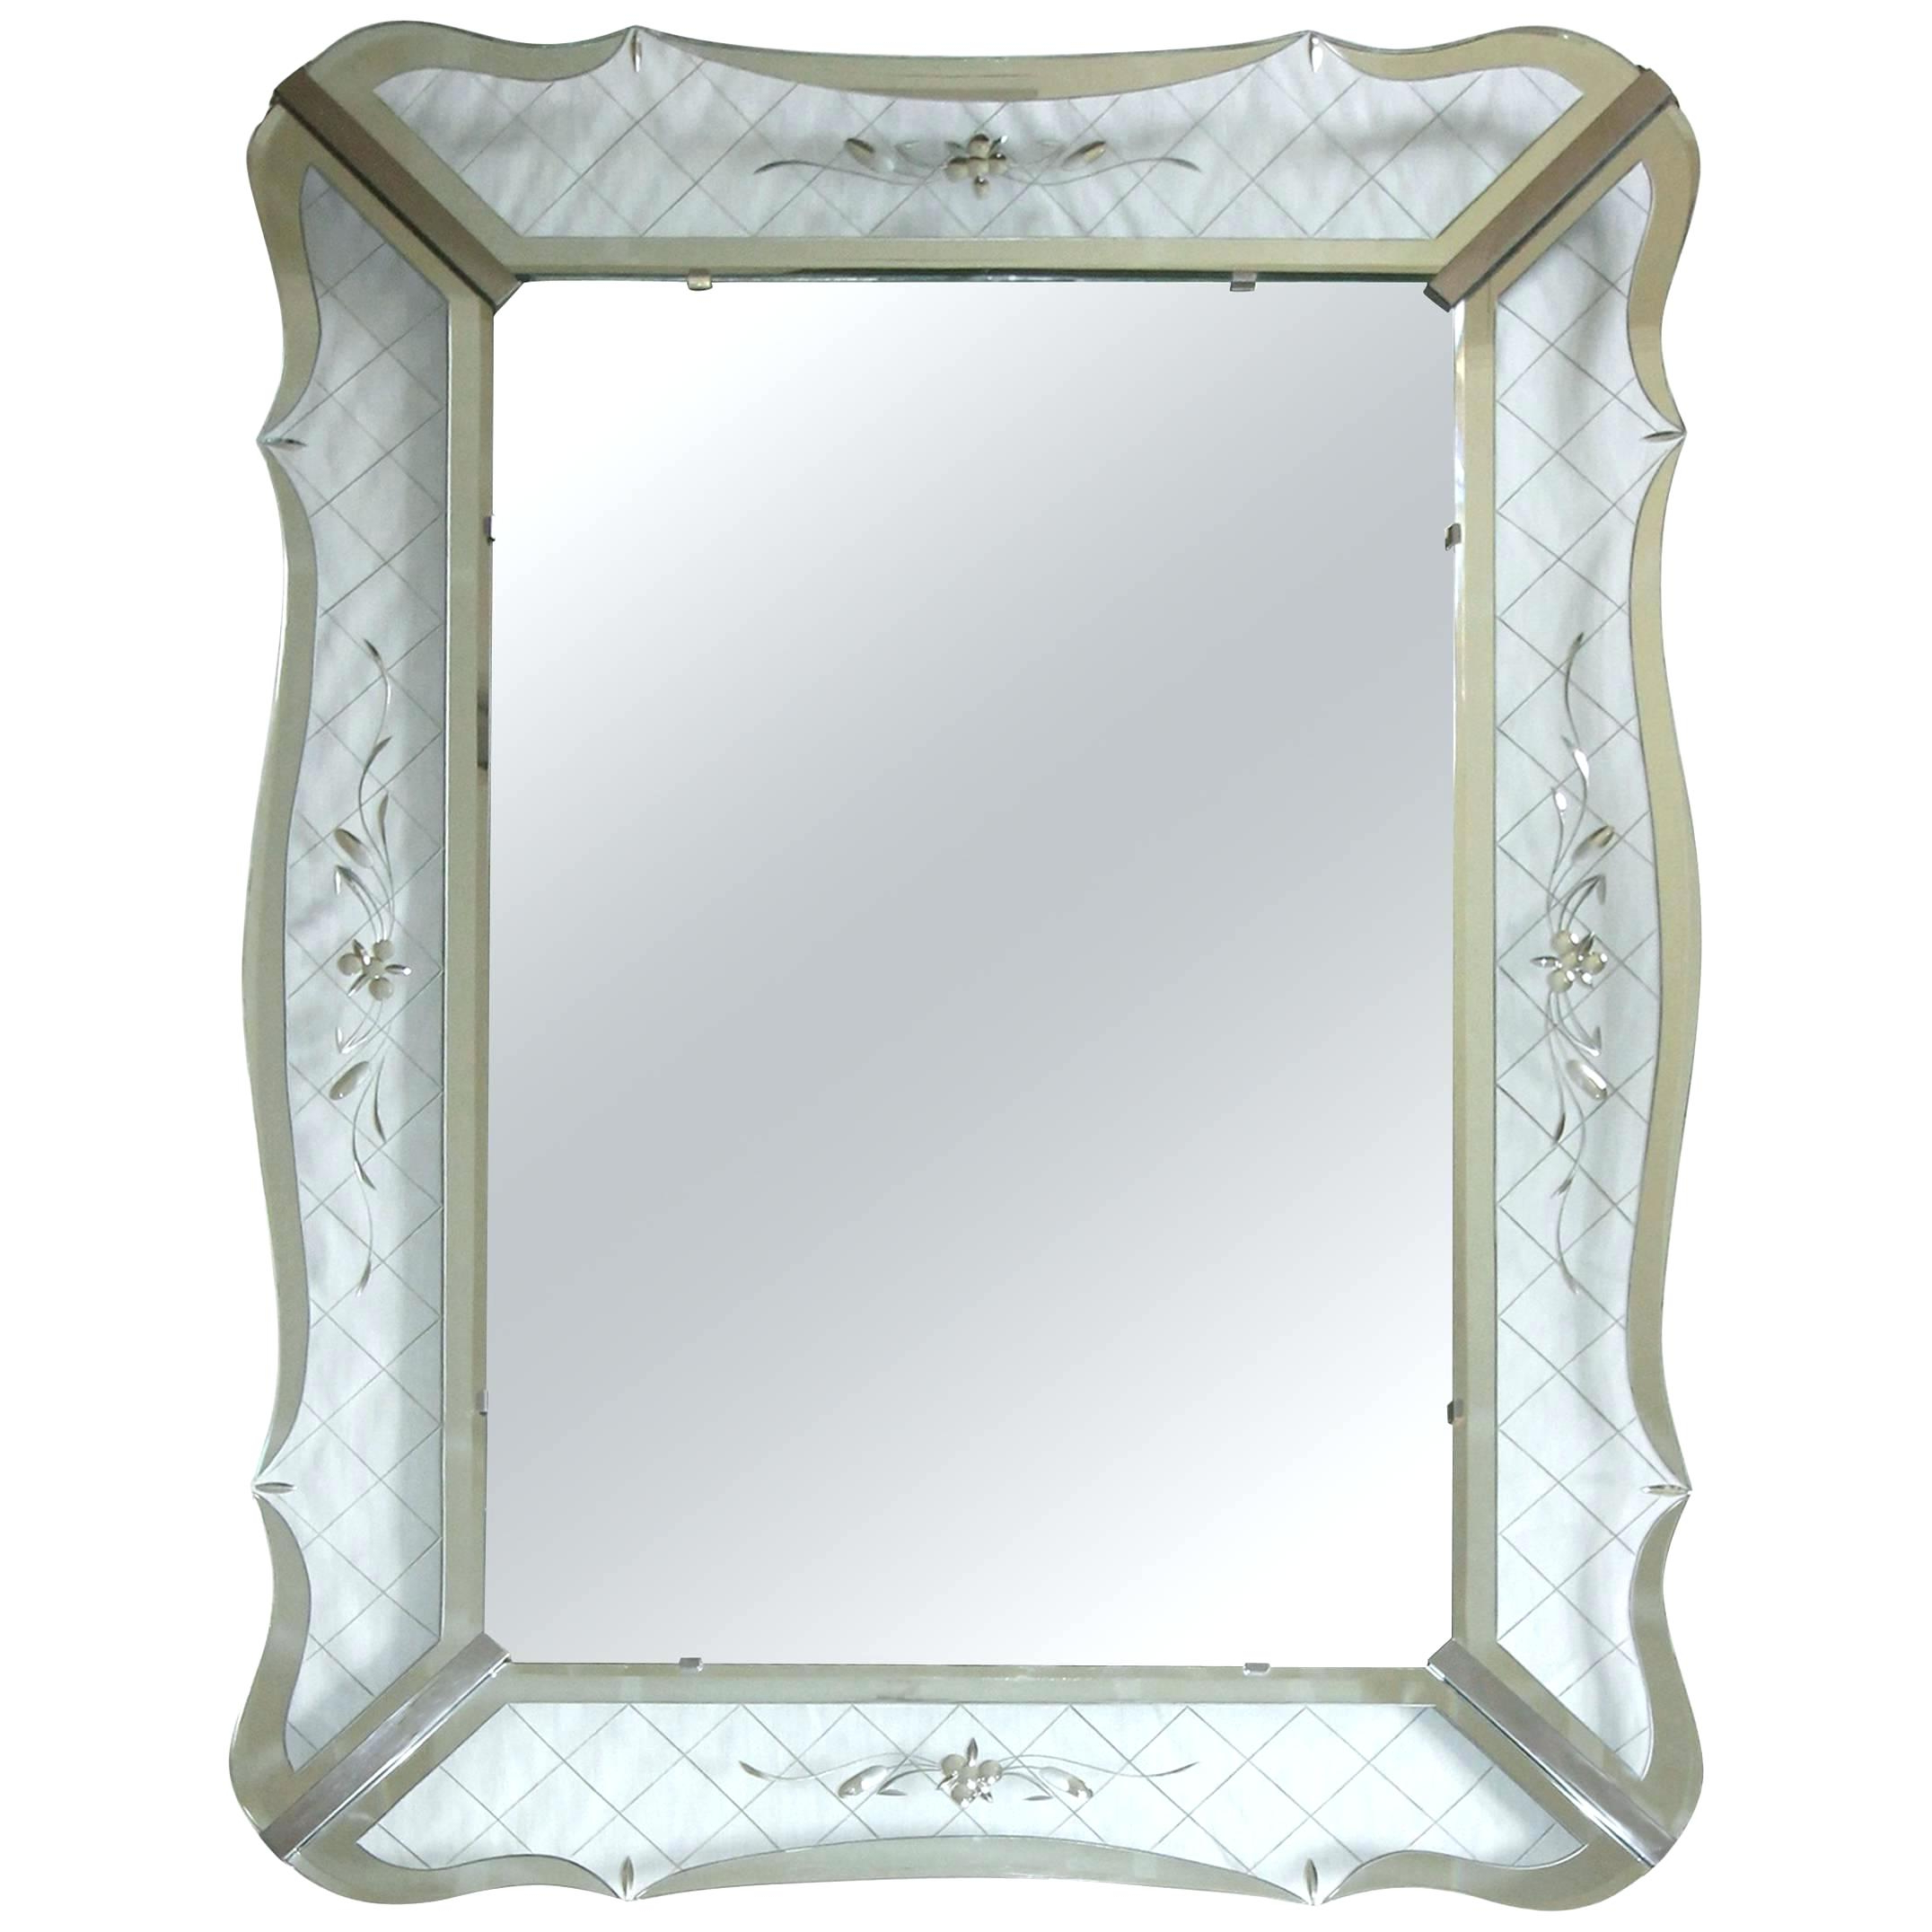 Wavy Wall Mirrors With Regard To Most Recent Wavy Wall Mirror – Happyeaster (View 20 of 20)